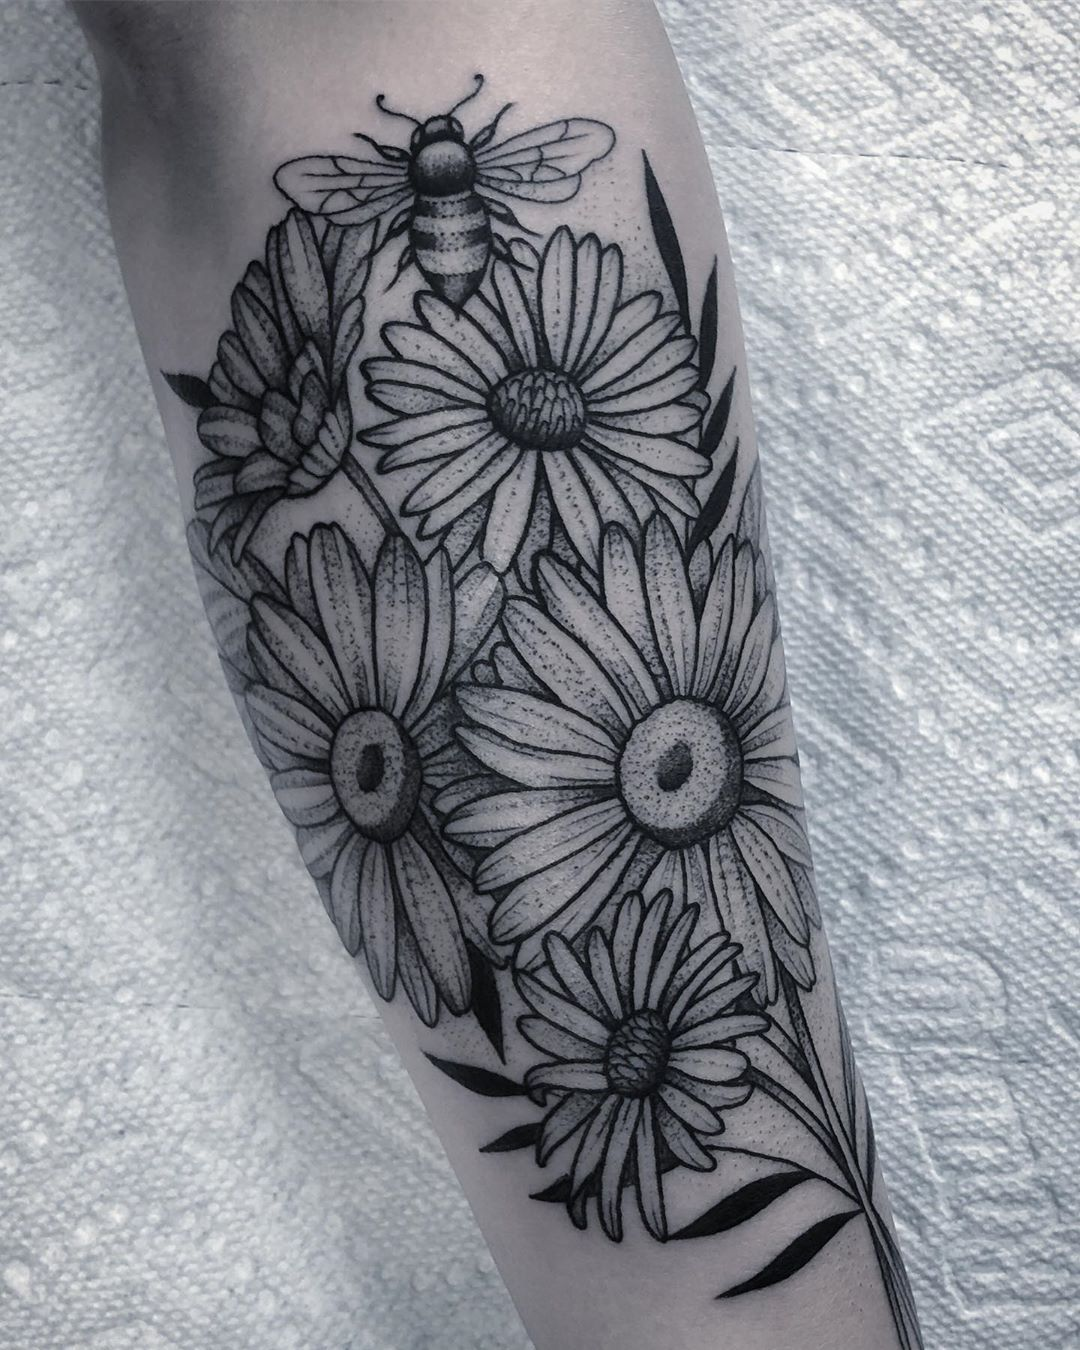 Daisies Asters And A Bee For The Sweetest Alyson Bee And Flower Tattoo Daisy Tattoo Aster Flower Tattoos